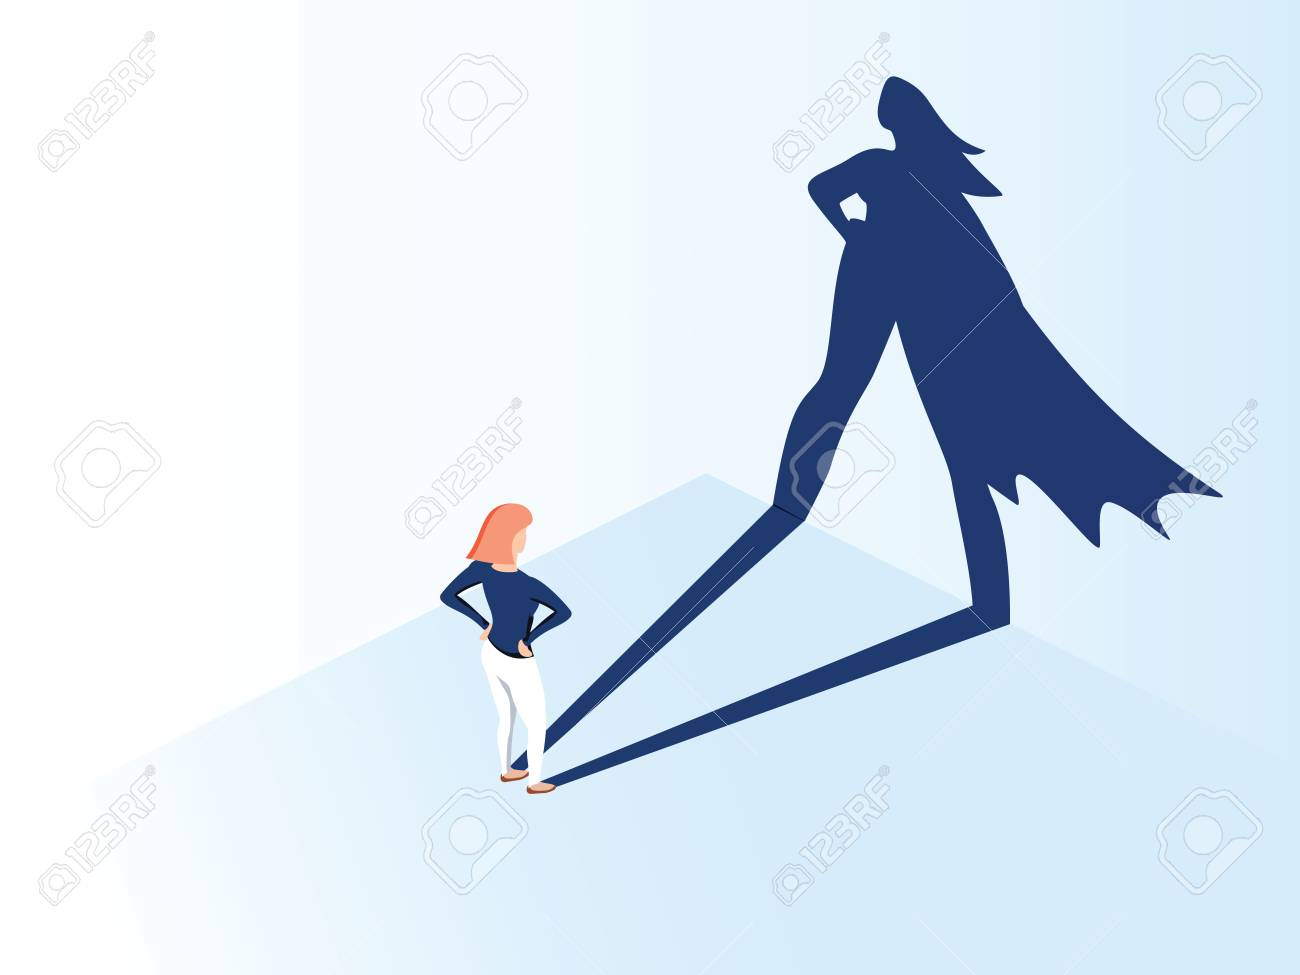 Business woman with big shadow superhero. Super manager leader in business. Concept of success, quality of leadership. - 125159964